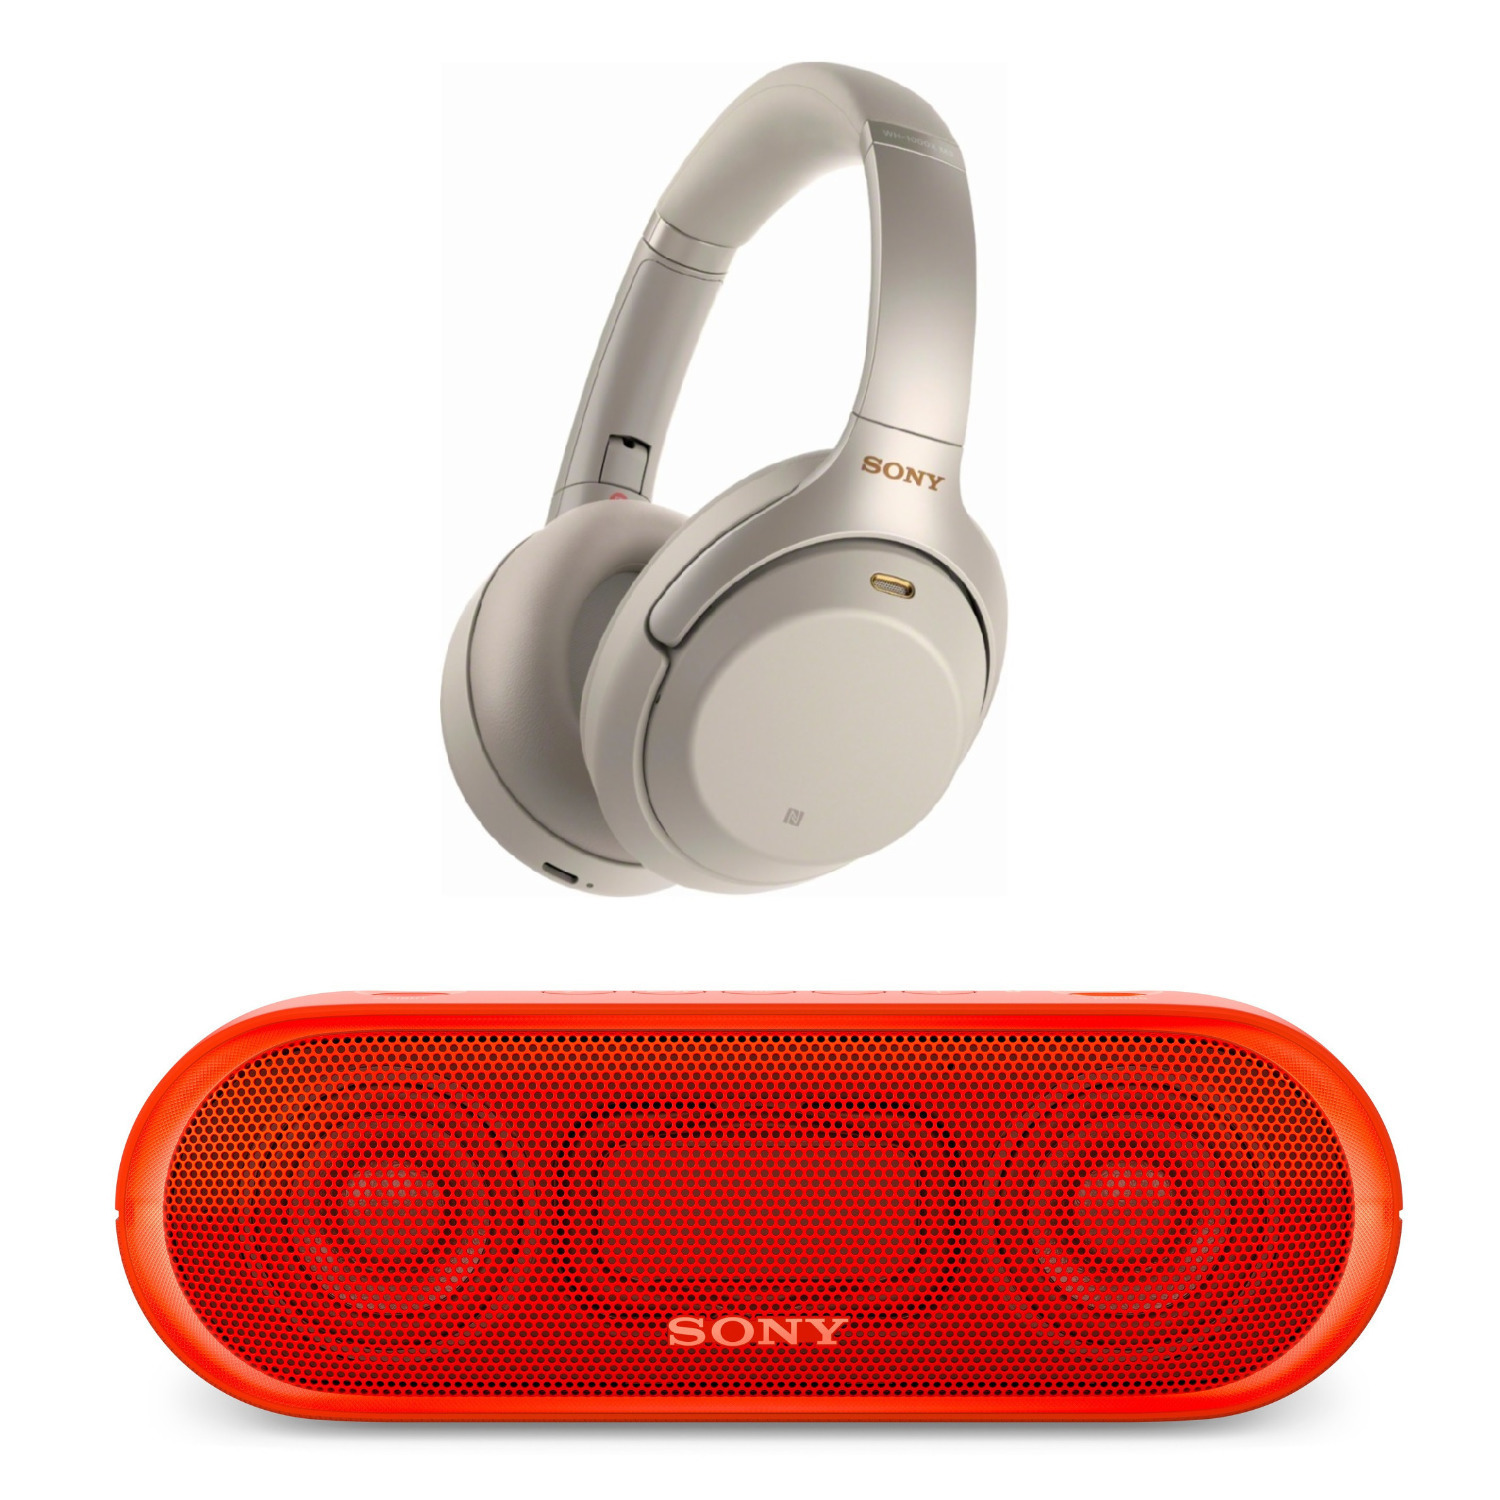 Sony WH-1000XM3 Noise Canceling Headphones (Silver) & Bluetooth Speaker Bundle